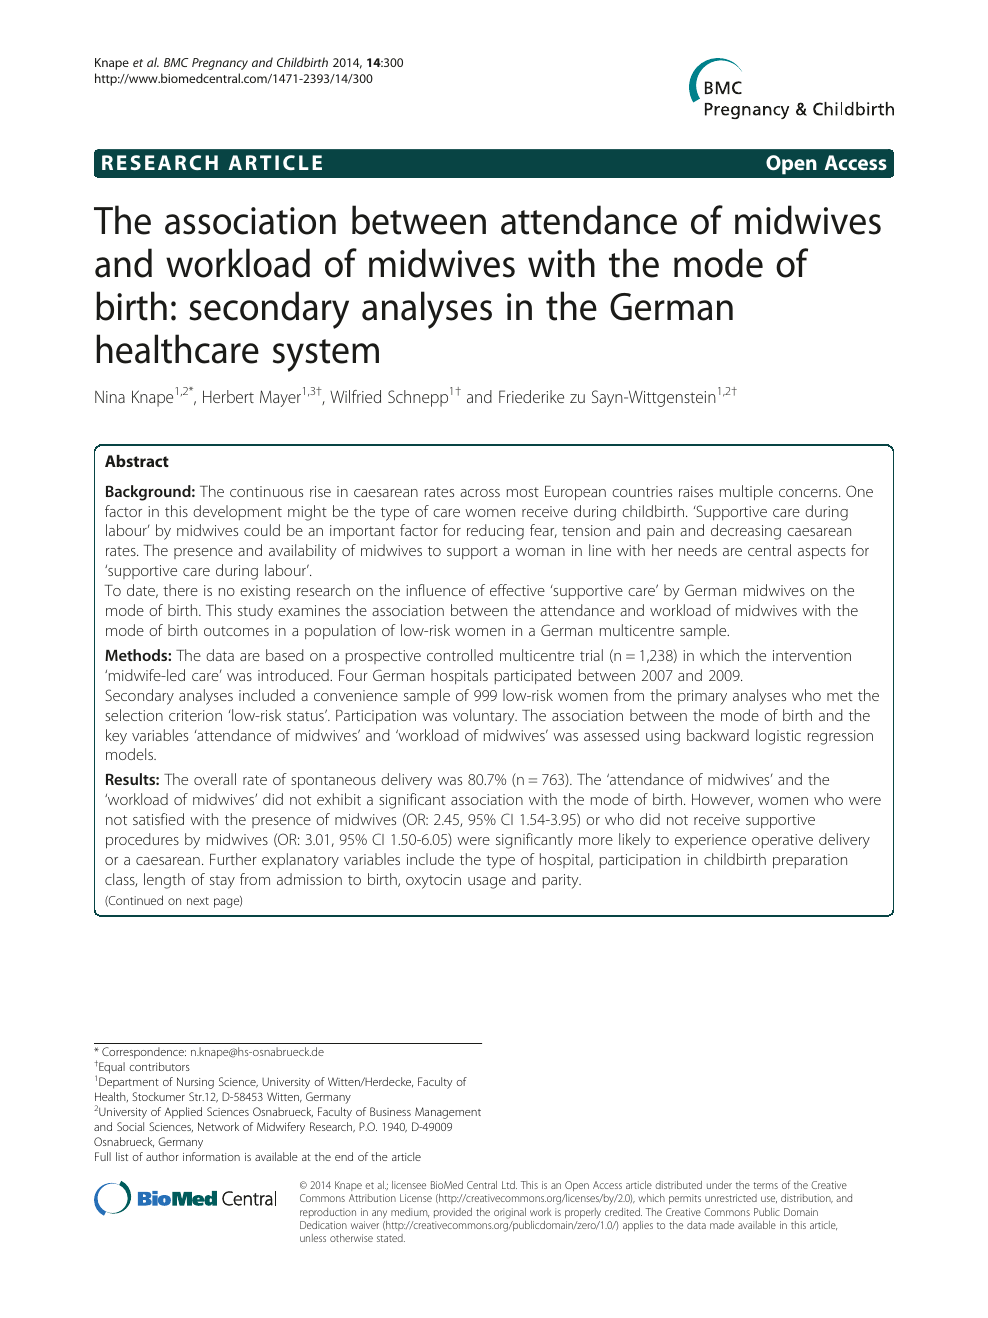 The association between attendance of midwives and workload